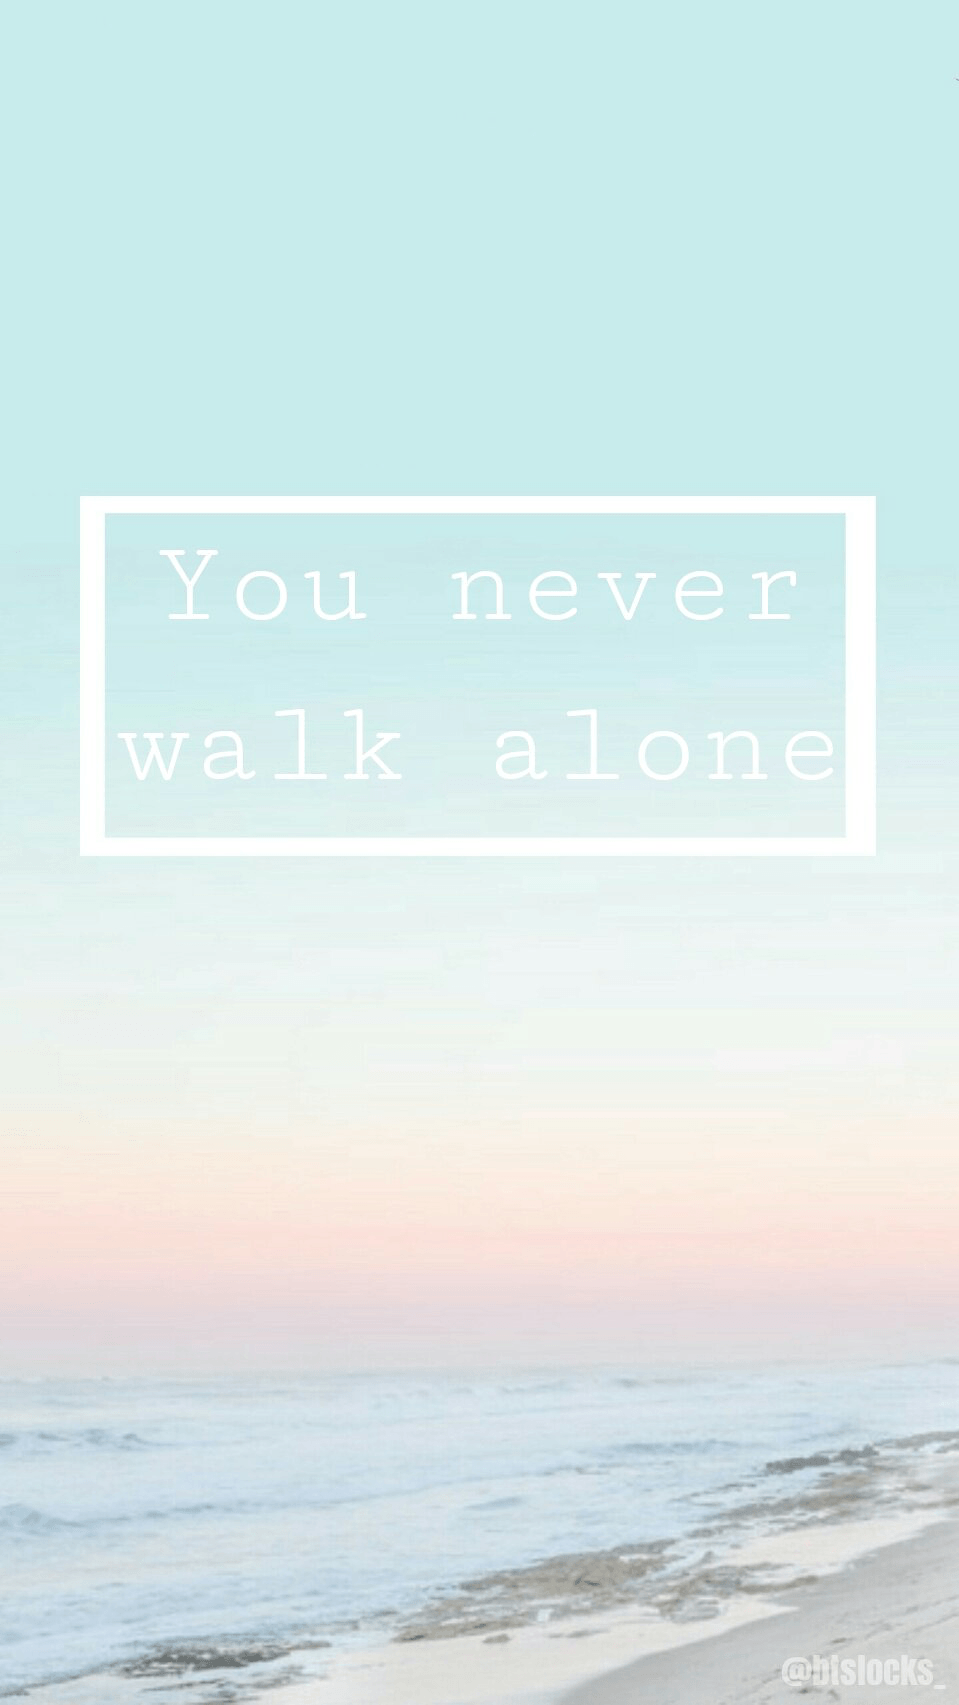 You Never Walk Alone Bts Wallpapers Top Free You Never Walk Alone